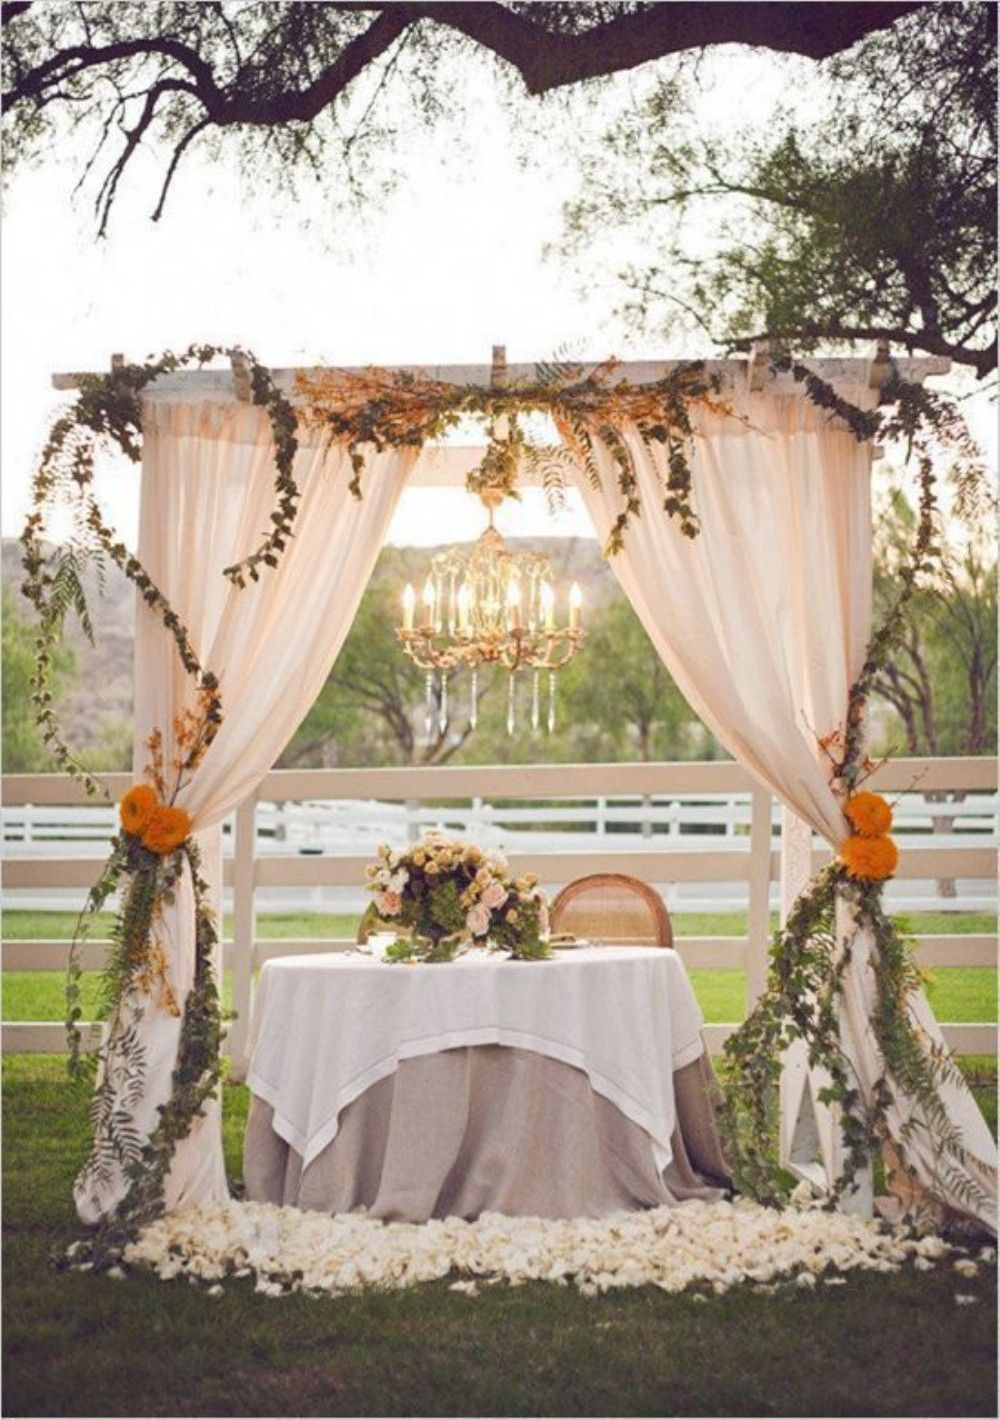 Wedding decorations wedding reception ideas november 2018  BudgetFriendly Outdoor Wedding Ideas for Fall  fall wedding